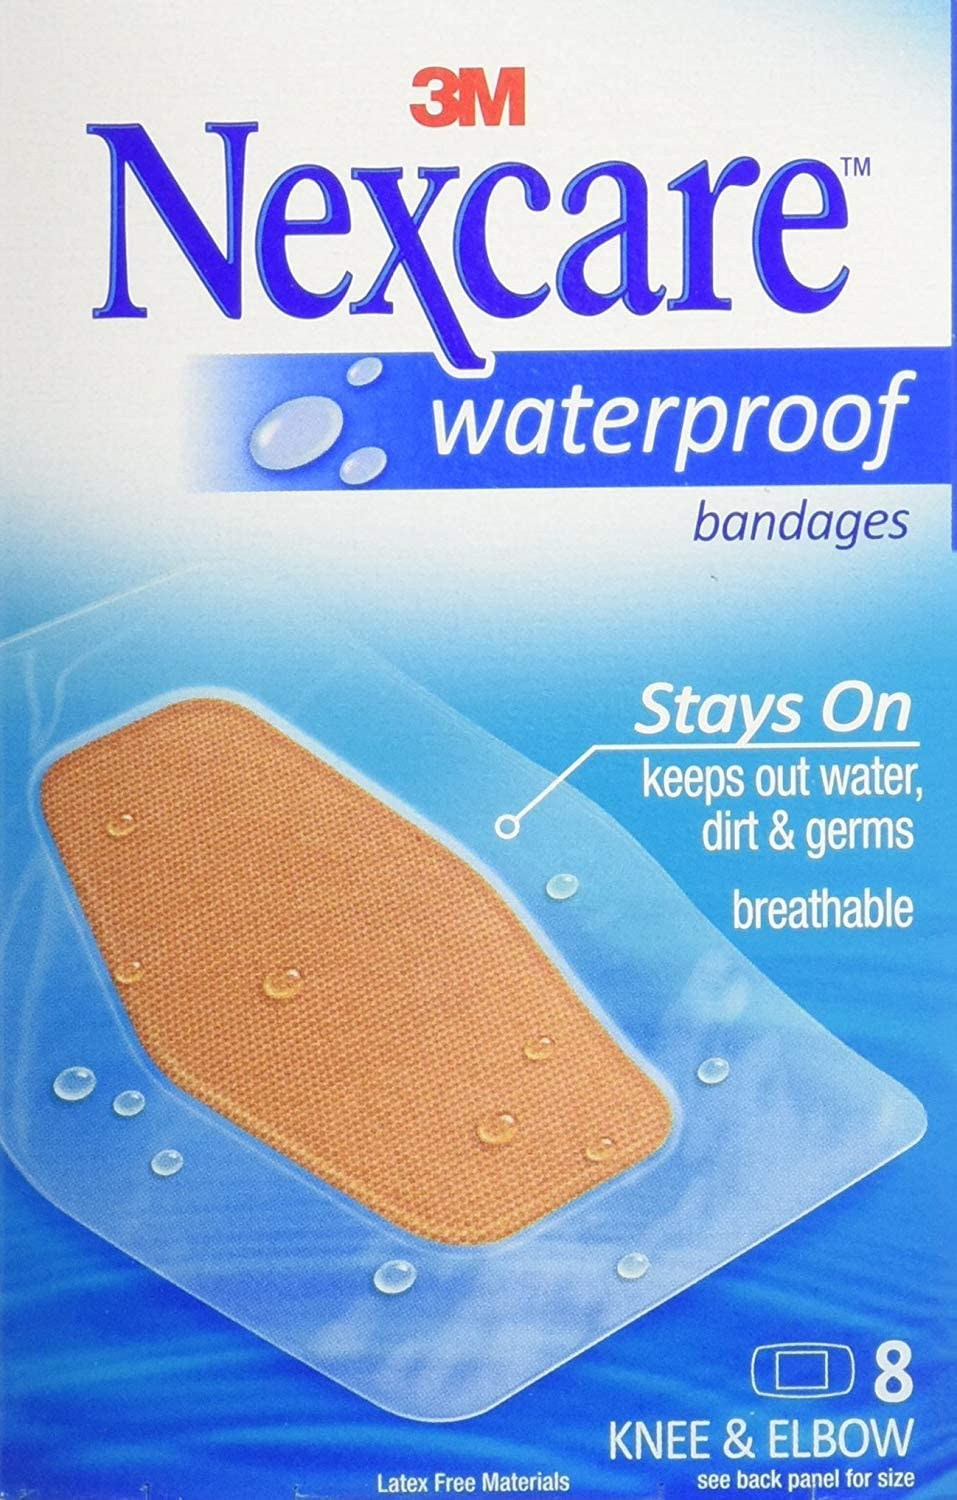 Nexcare Waterproof Stays On Bandage, Knee and Elbow, 8 Bandages per Box (4 Pack)